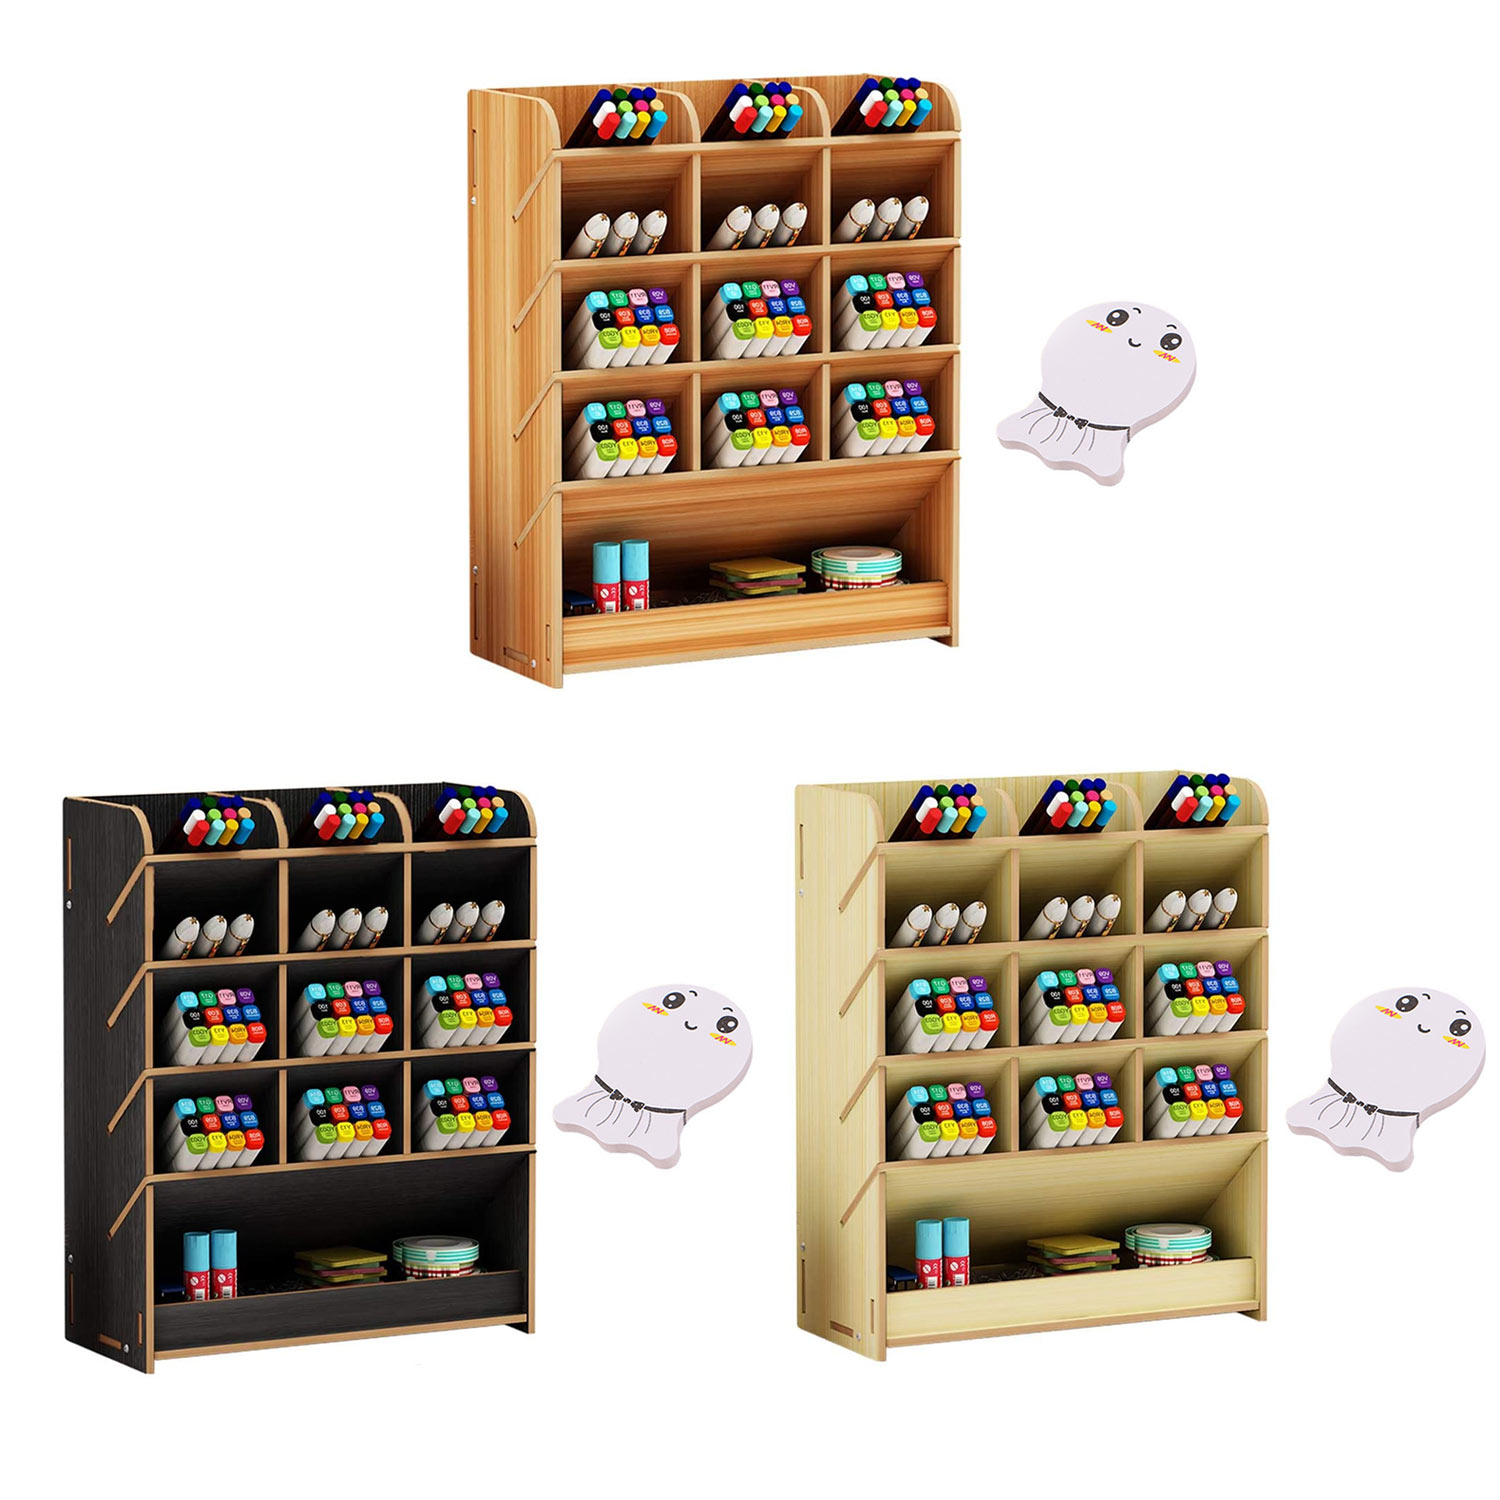 Wooden Desk Organizer Multi-Functional Pen Pencil Holder Storage Rack with Post-it Sticker for Office School Stationery Supplies